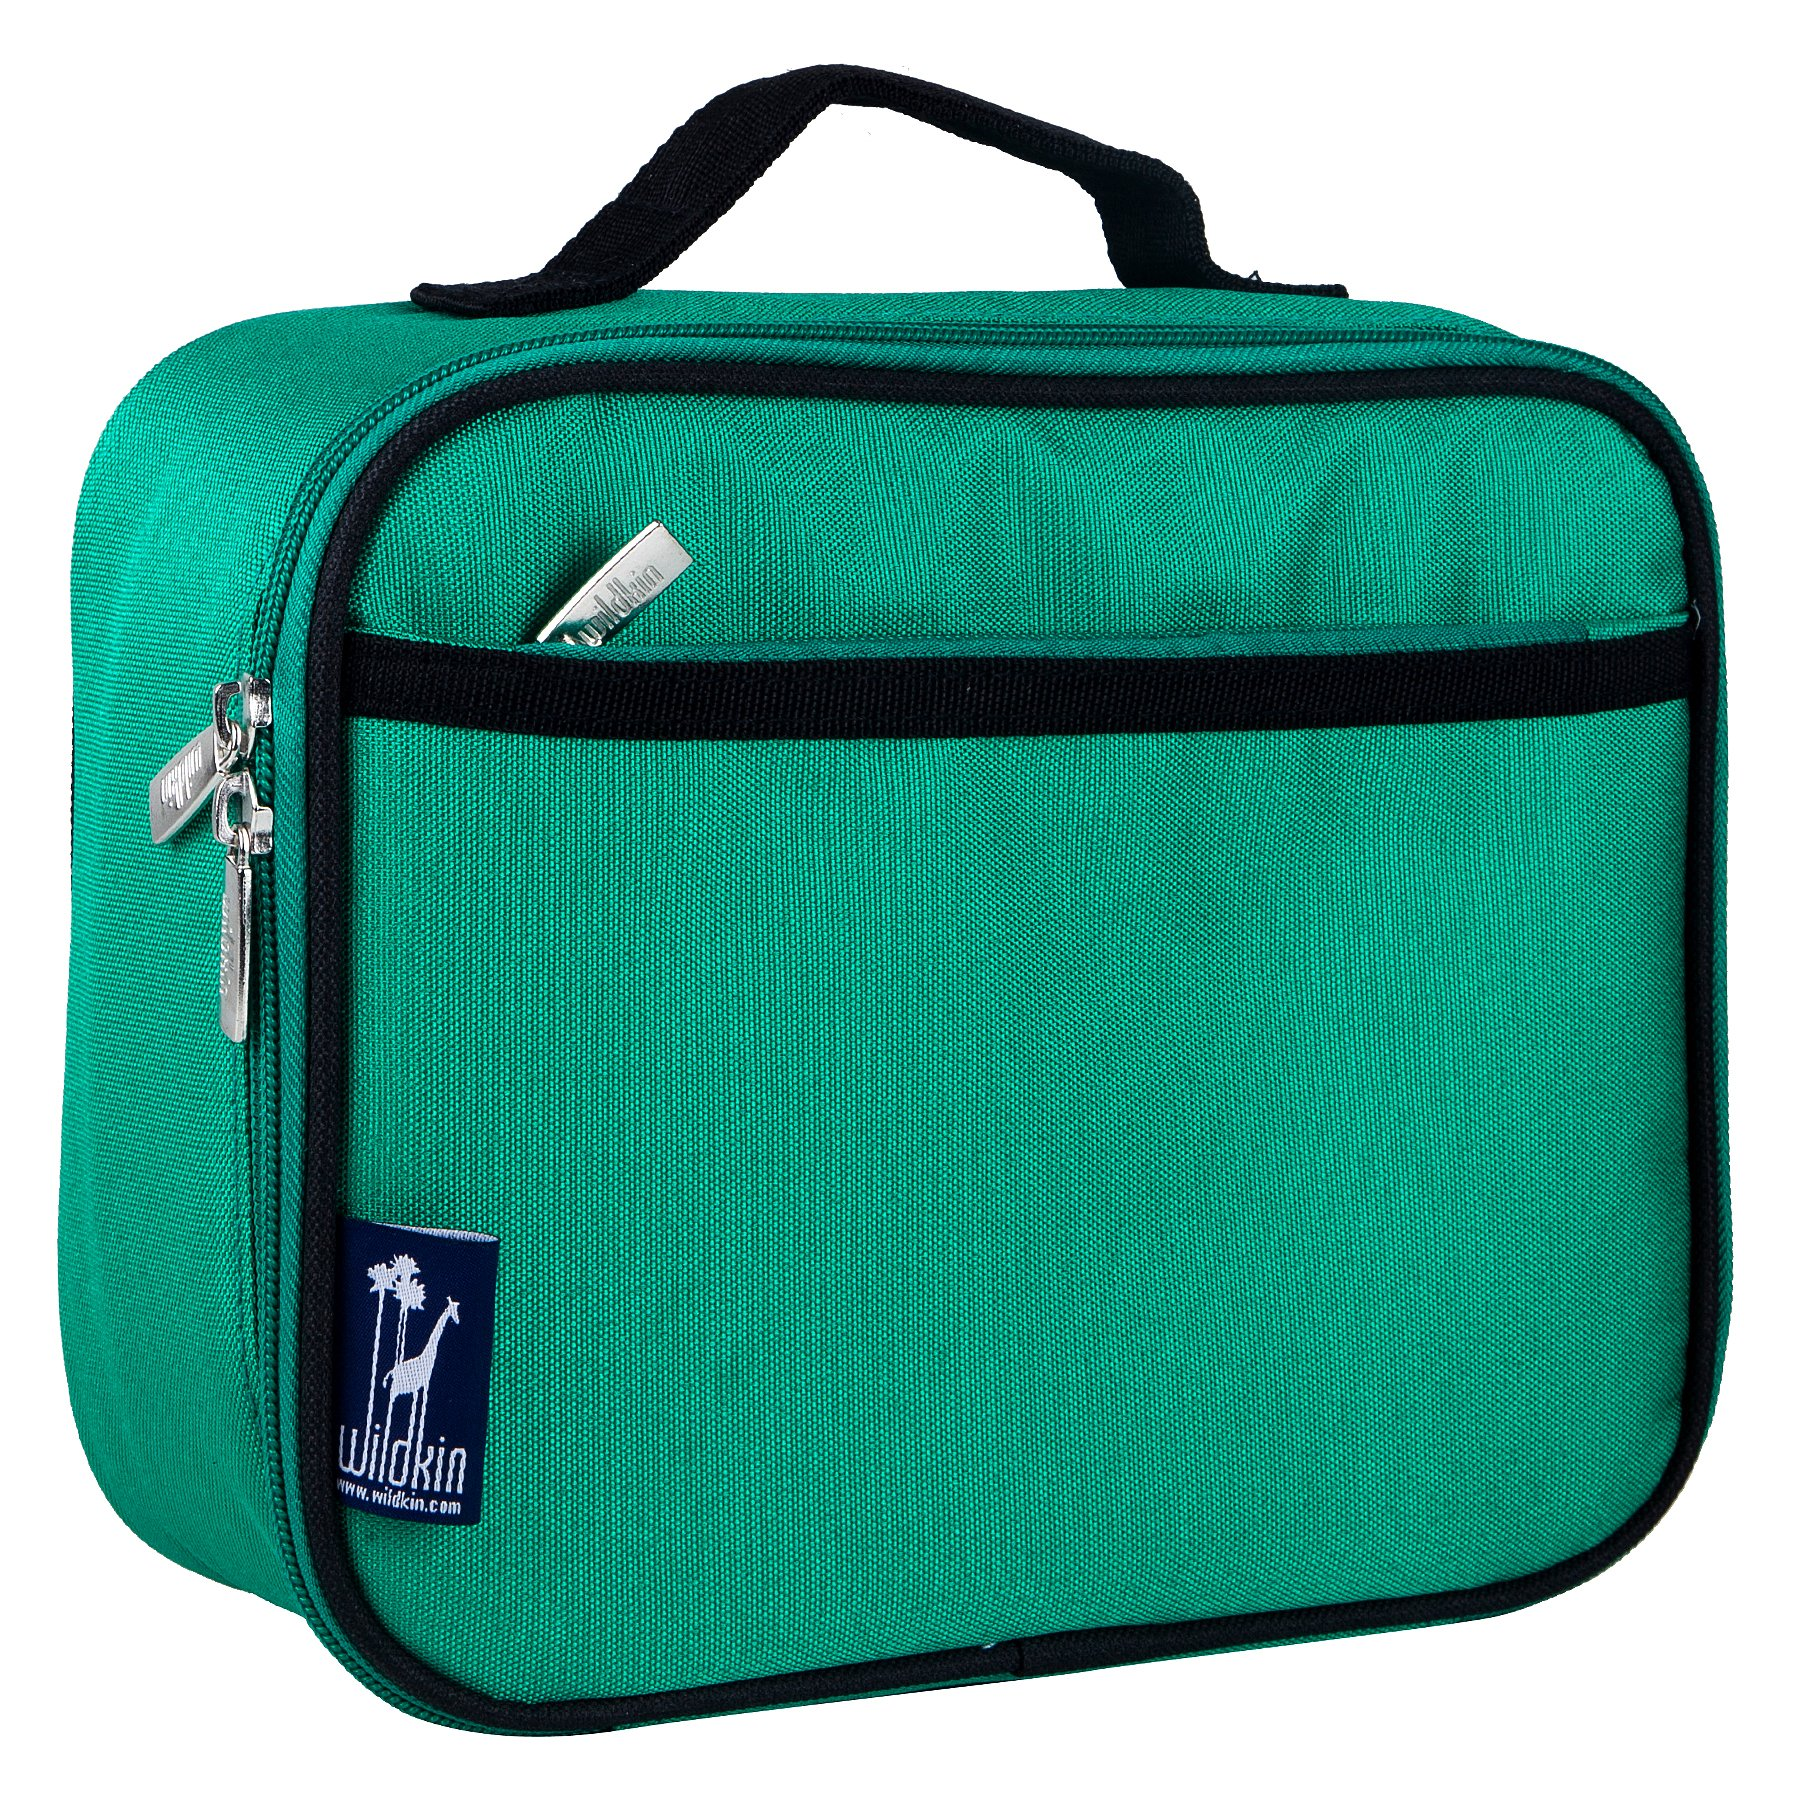 Wildkin Kids Insulated Lunch Box Bag for Men and Women, Ideal Size for Packing Hot or Cold Snacks for Work &Travel, Measures 9.75 x 7 x 3.25 Inches, Mom's Choice Award Winner, BPA-free(Emerald Green)